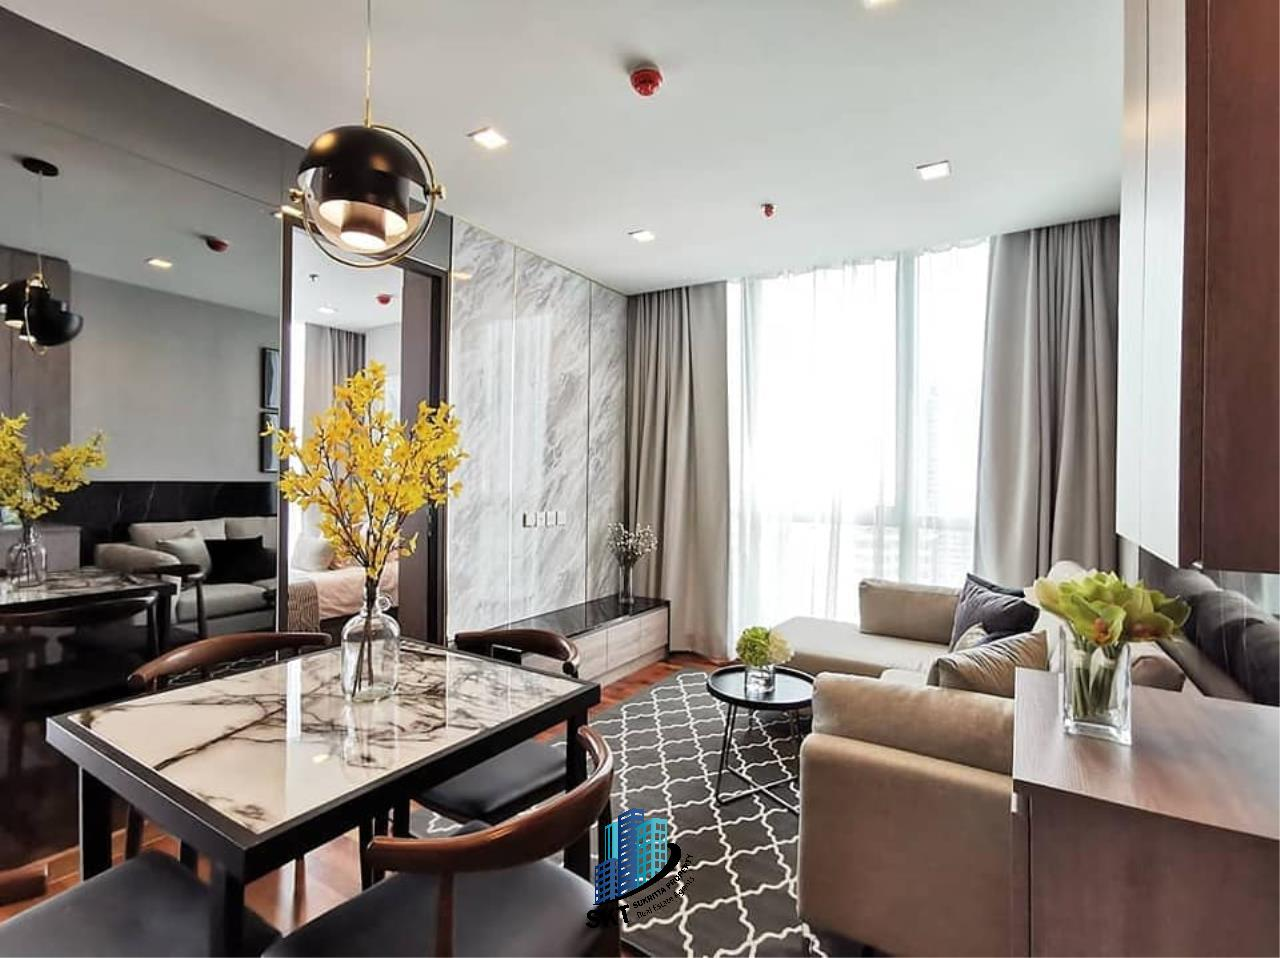 Sukritta Property Agency's WISH SIGNATURE MIDTOWN SIAM CONDO NEAR BTS RATCHATHEWI 2